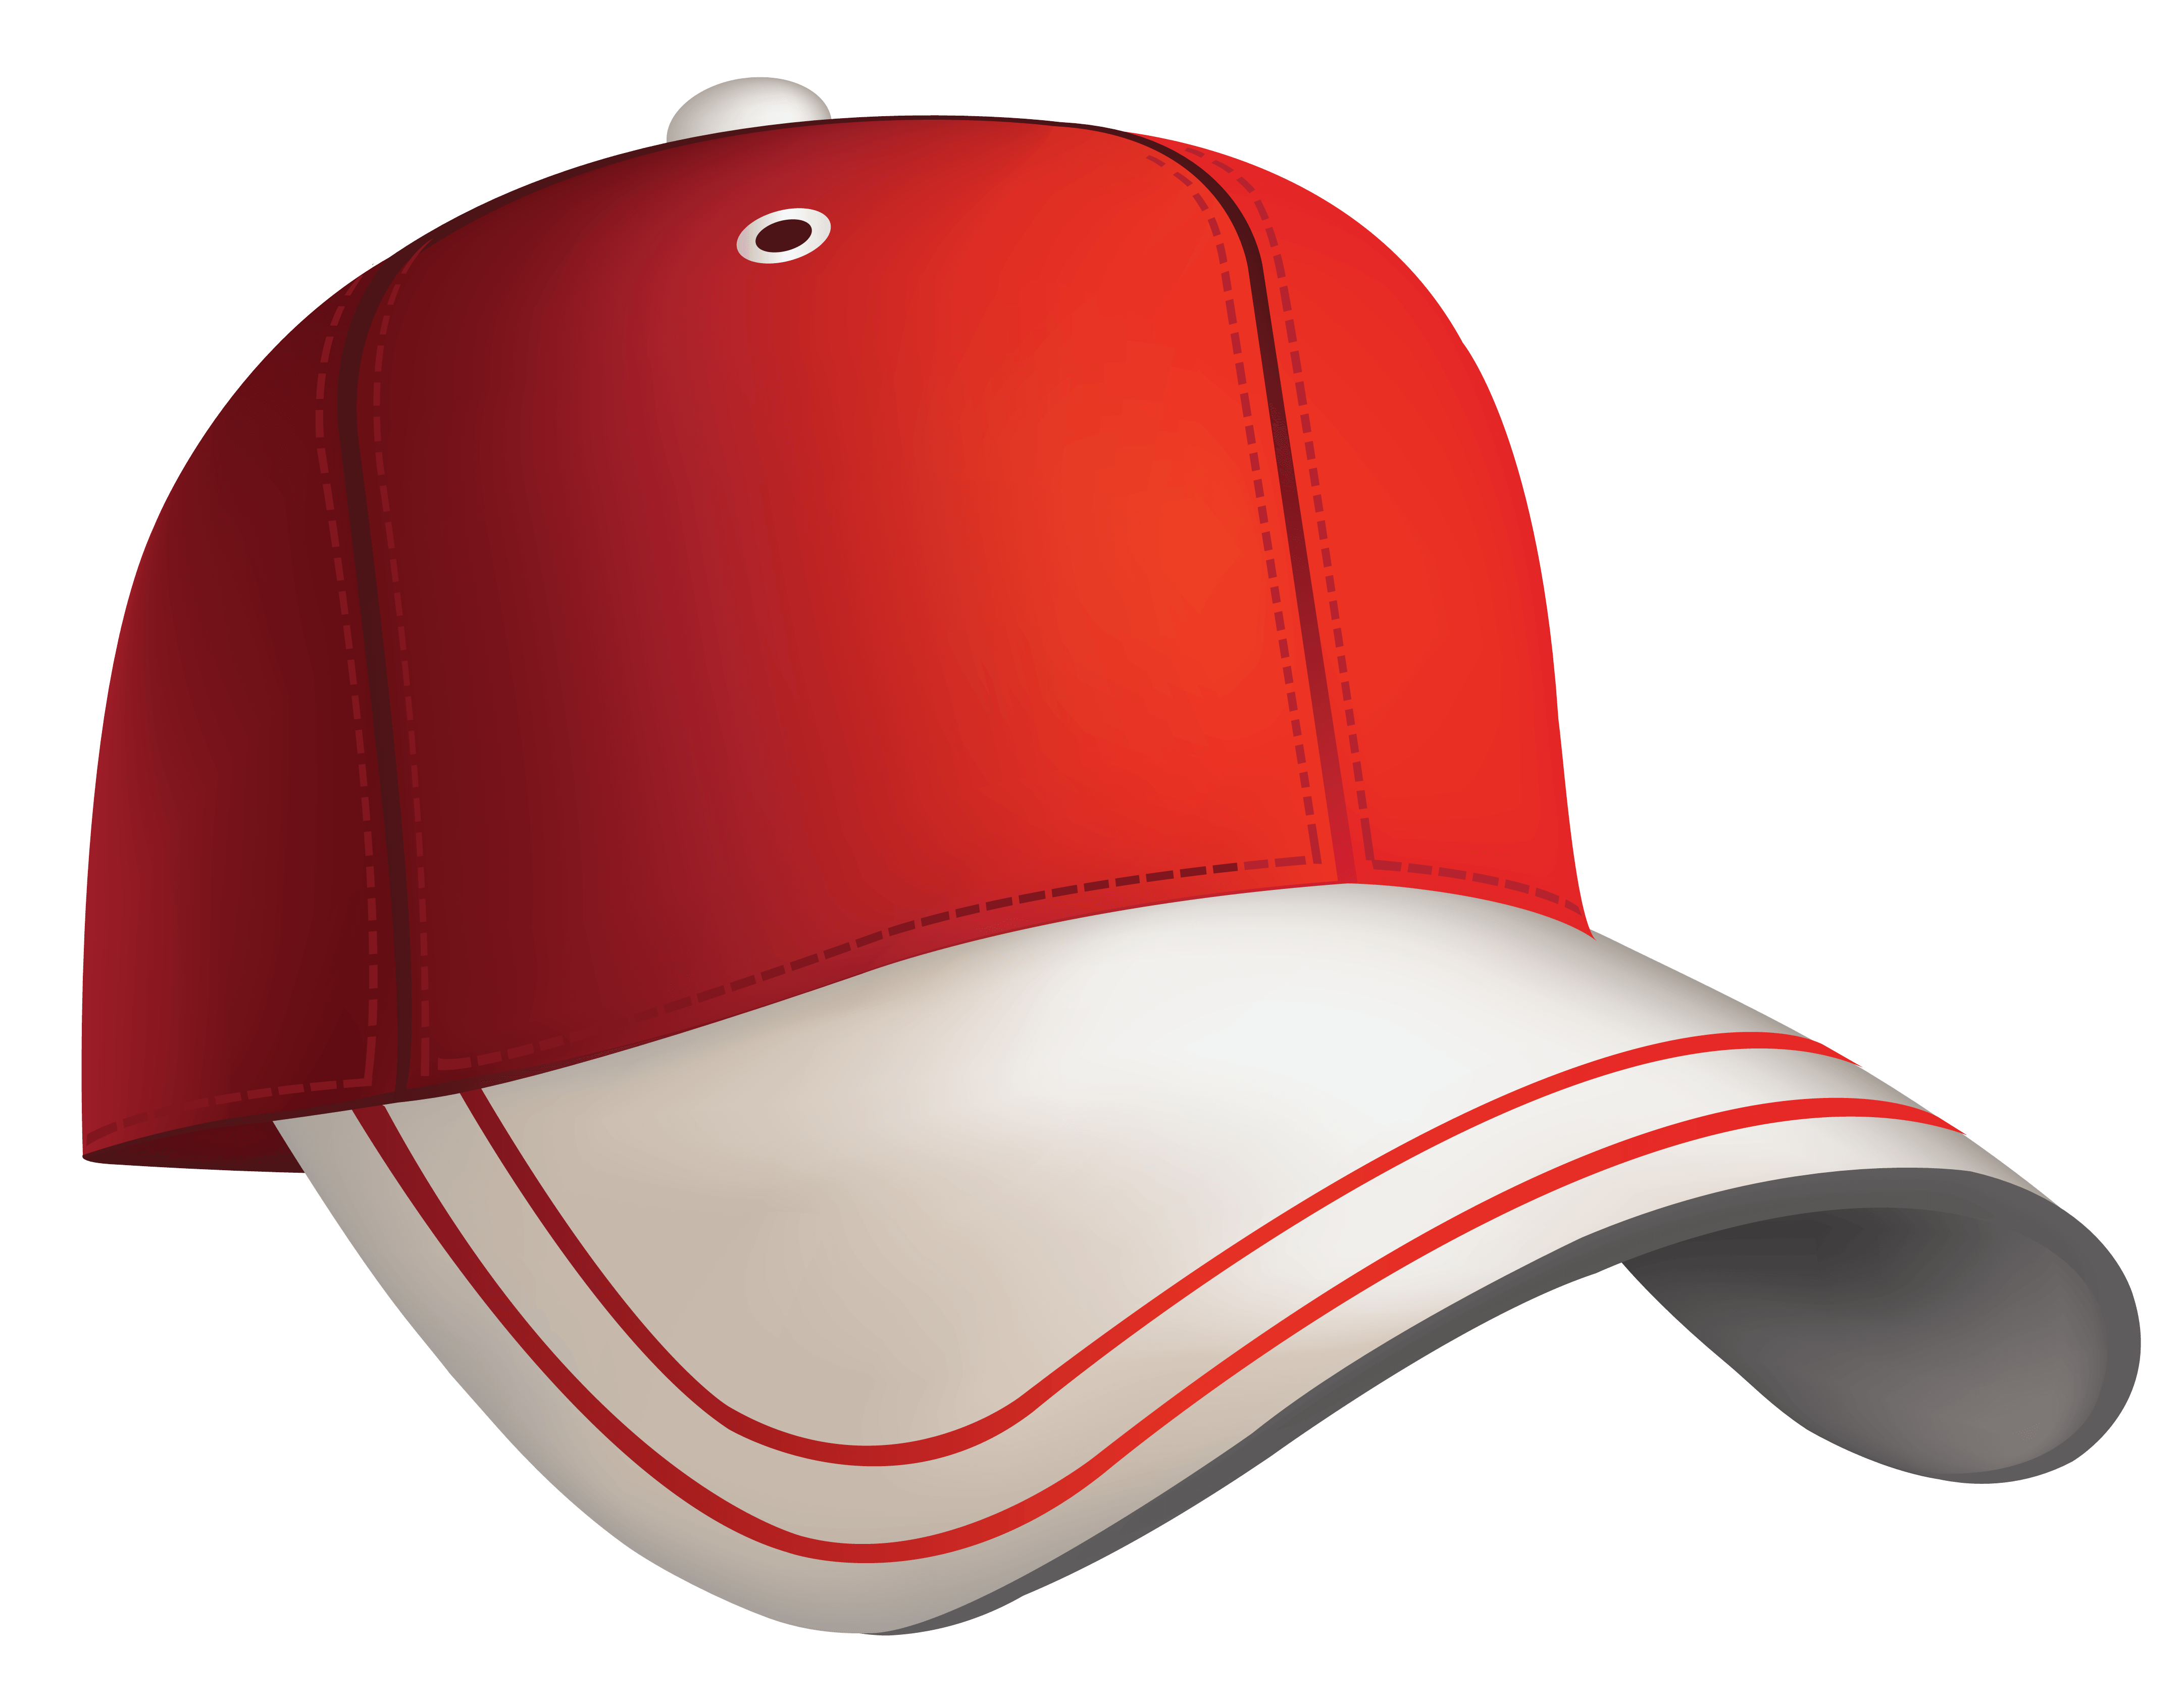 Nautical clipart cap. Download free png photo